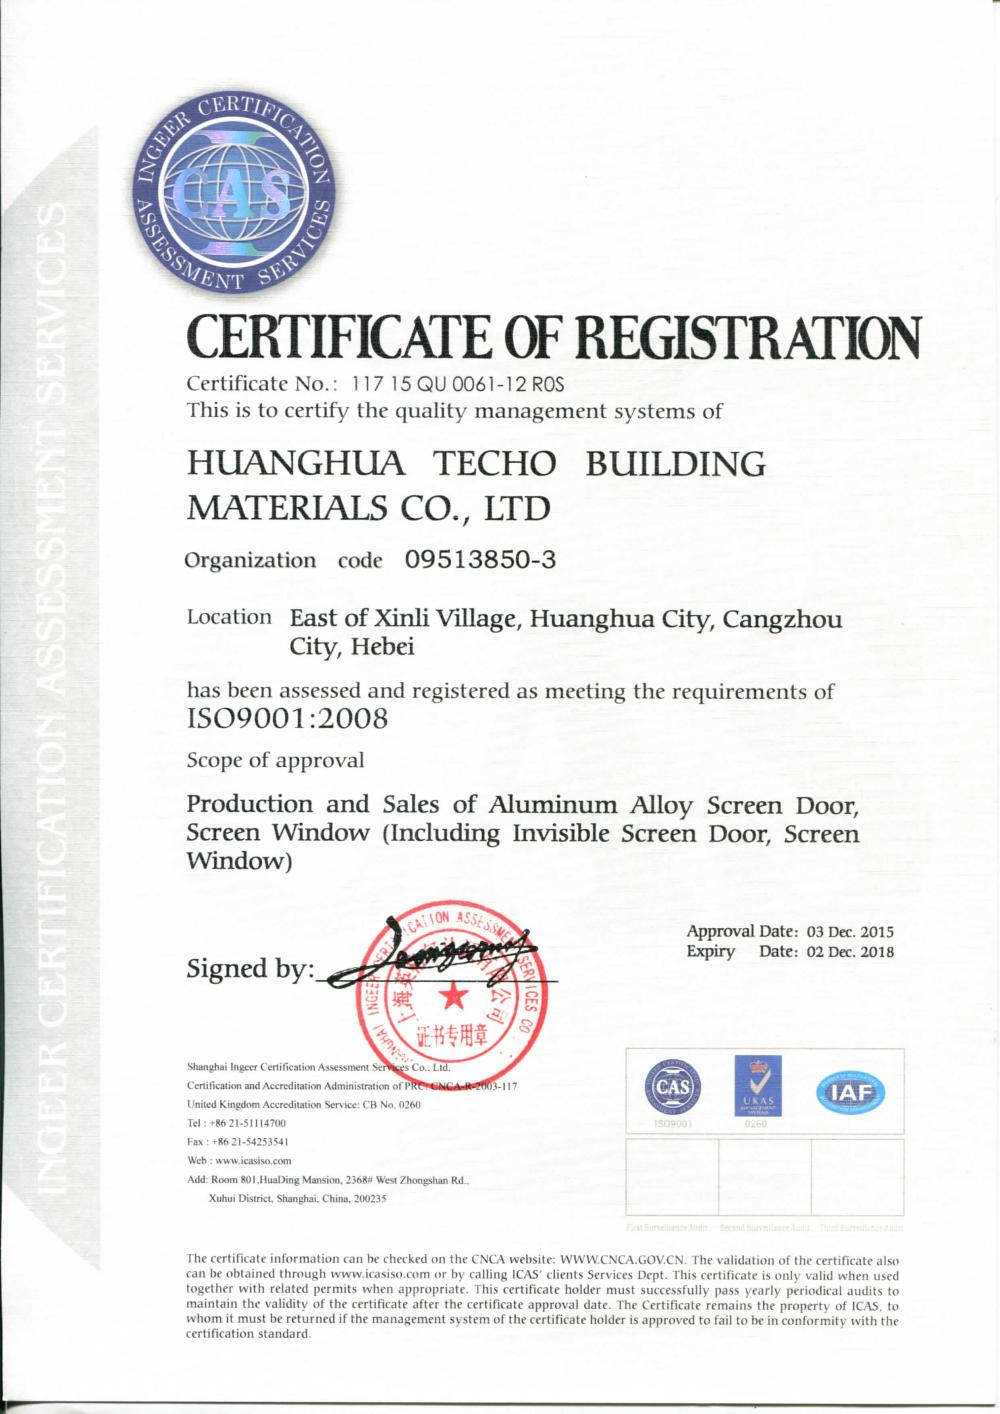 Qualilty management systems ISO9001:2008